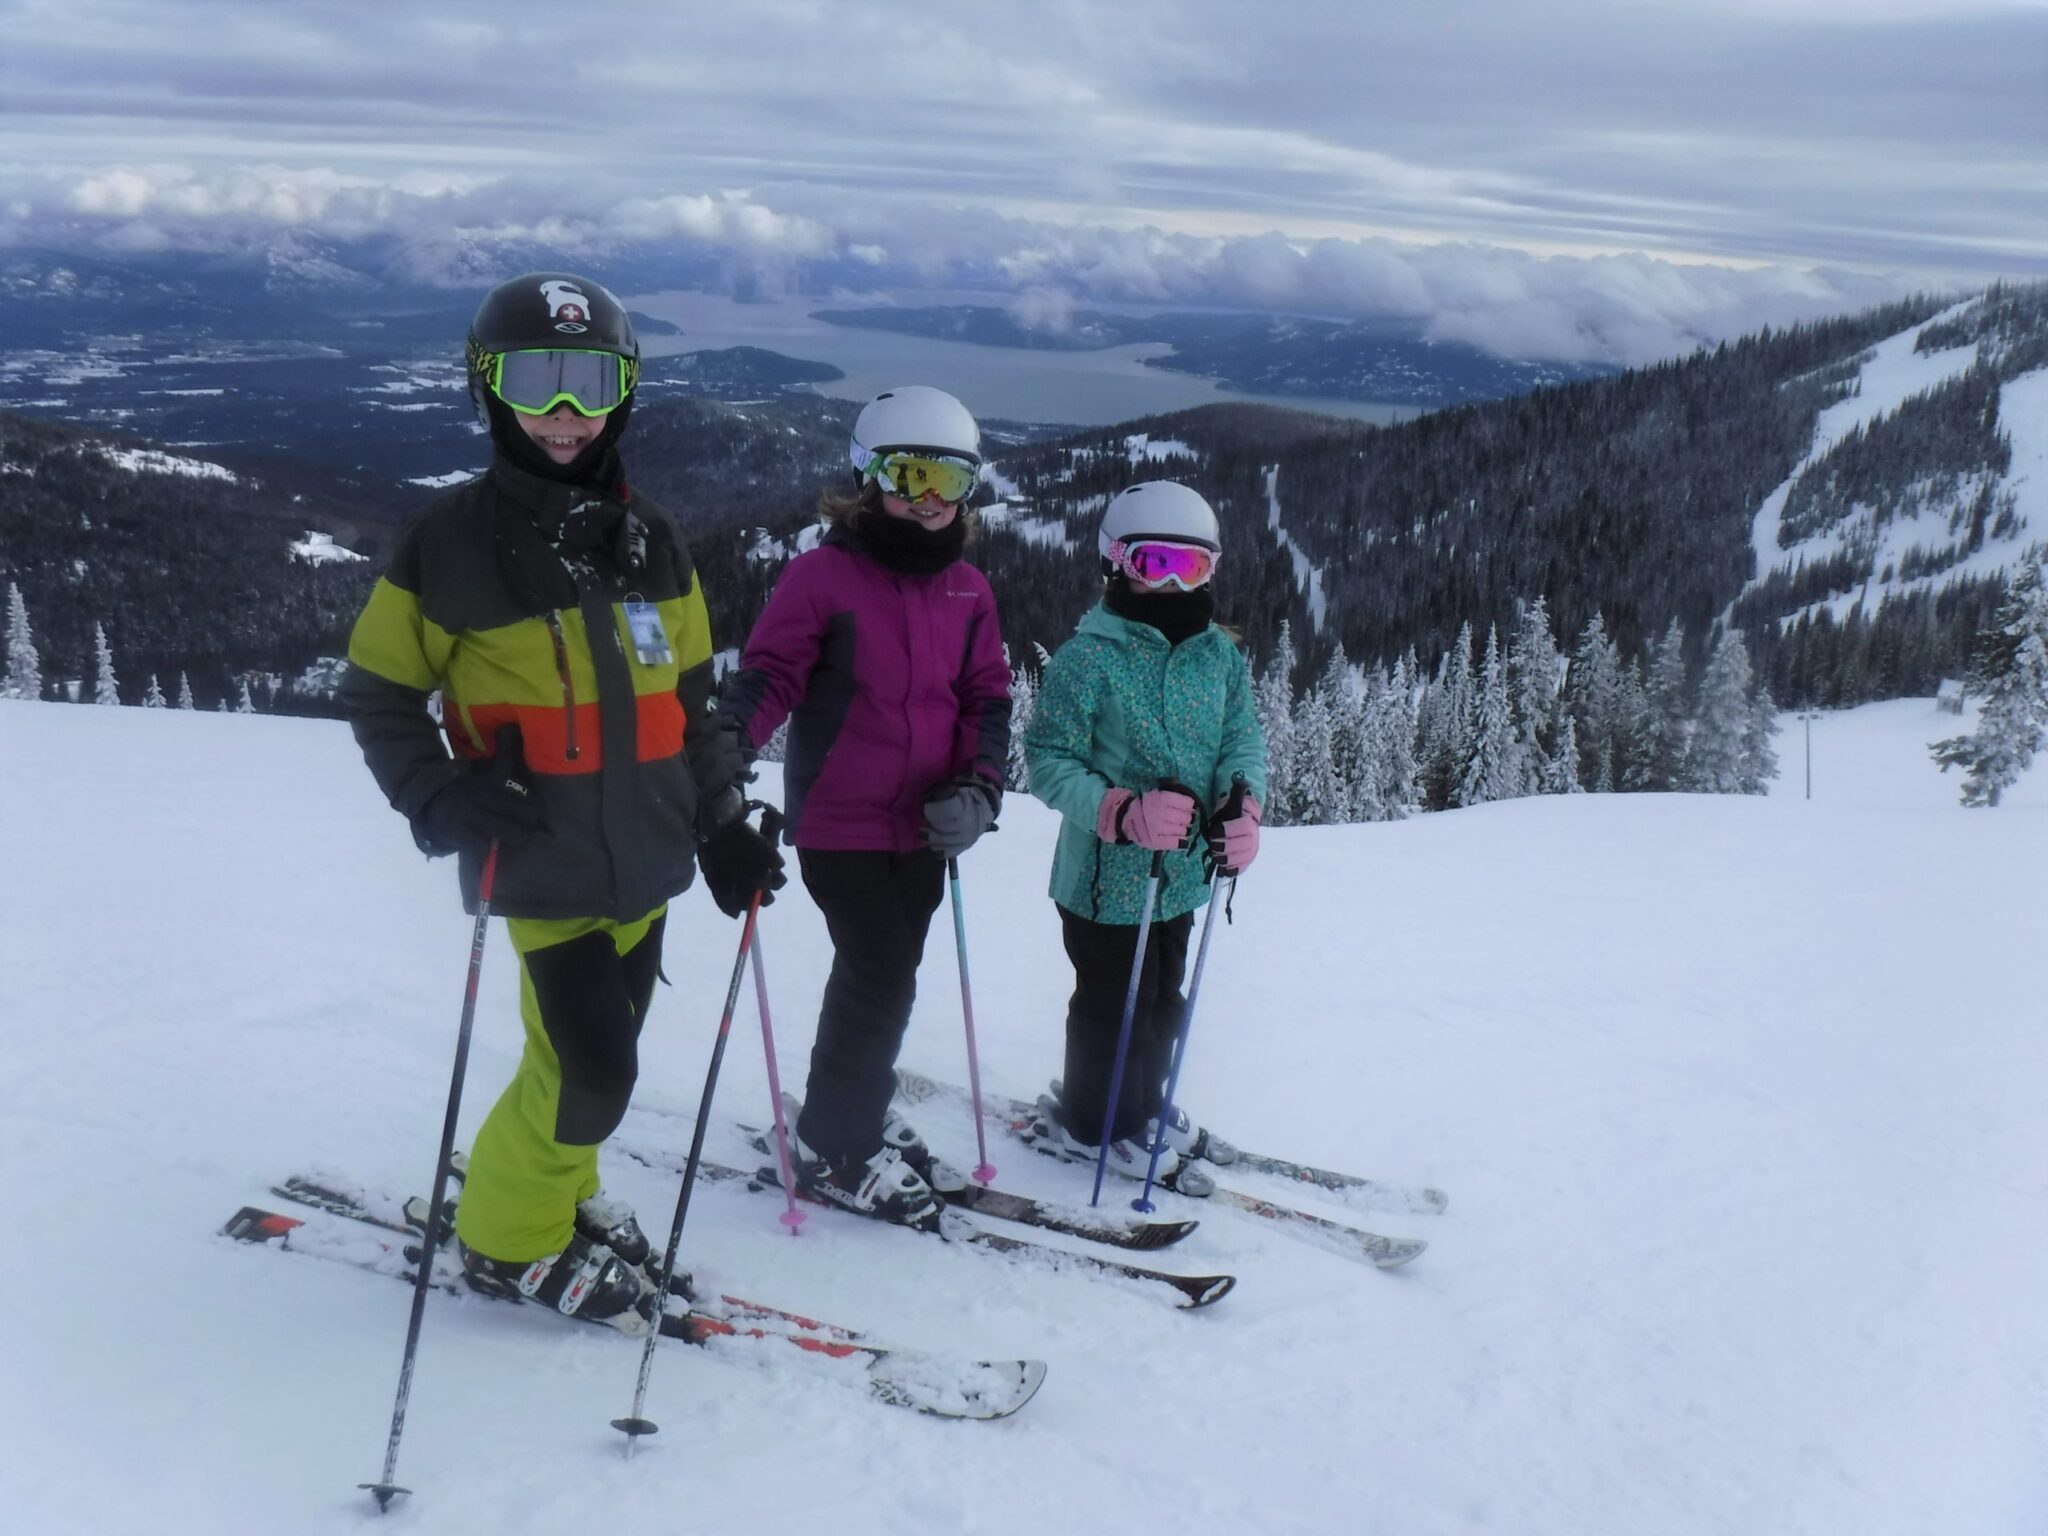 A group of kid skiers on top of a mountain.